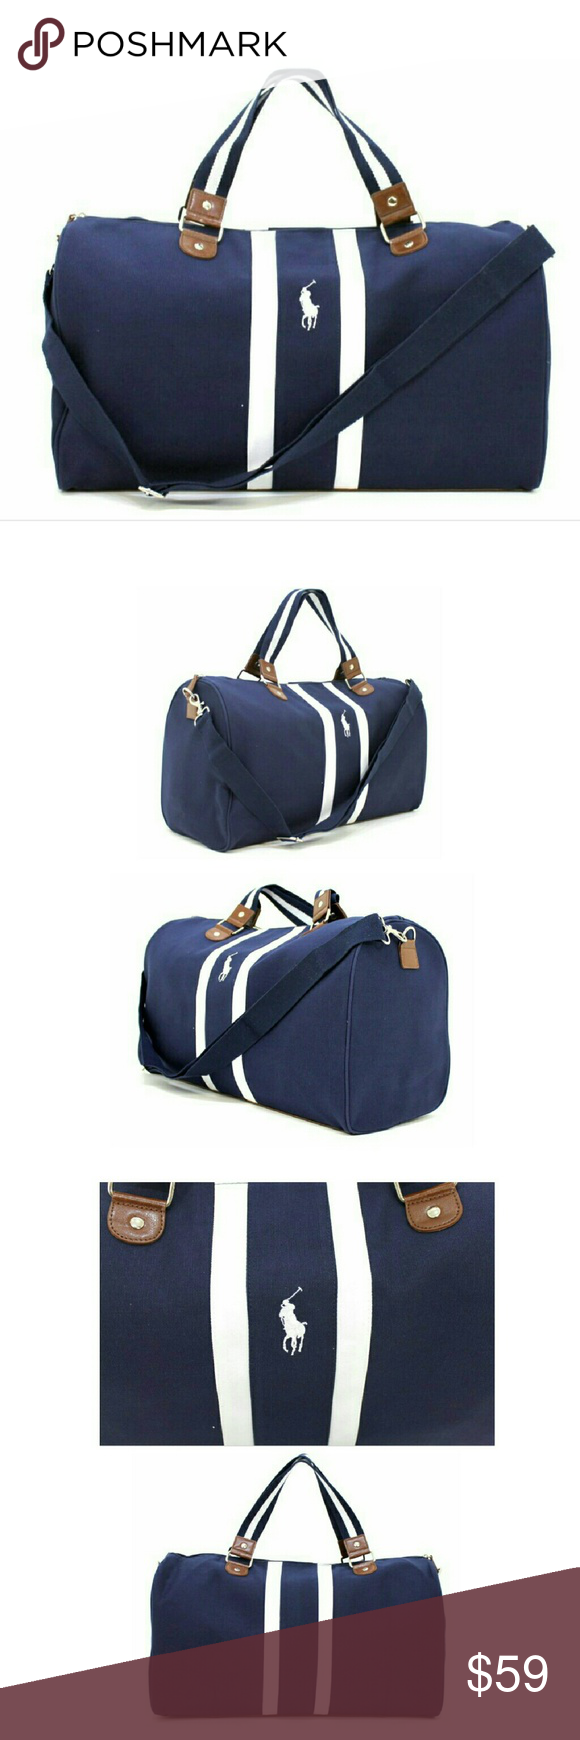 605a3f420cf Ralph Lauren Polo Blue Navy White New Weekend Bag New Ralph Lauren Polo  Dark Navy Blue White Weekend Travel Gym Holdall Bag Sporty, stylish and  masculine, ...